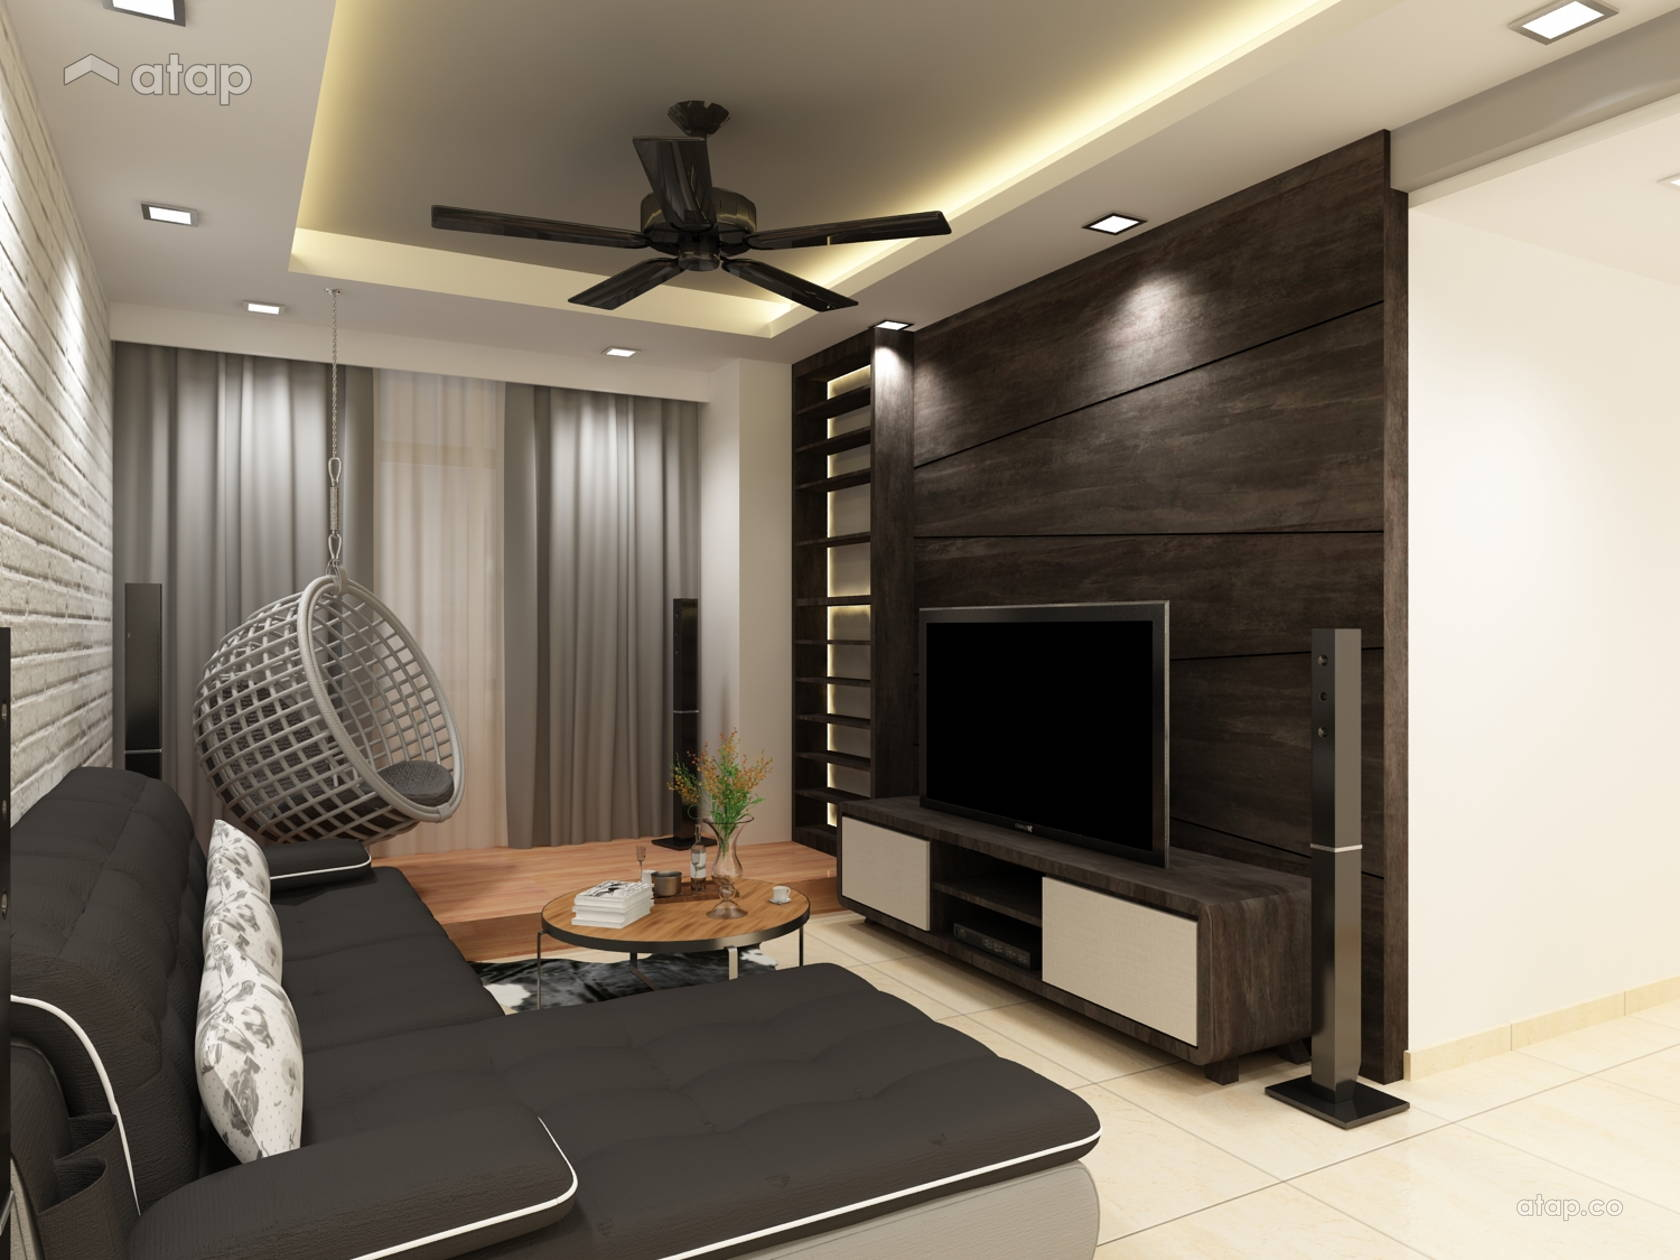 Condominium share this professional sensuouslight design renovation